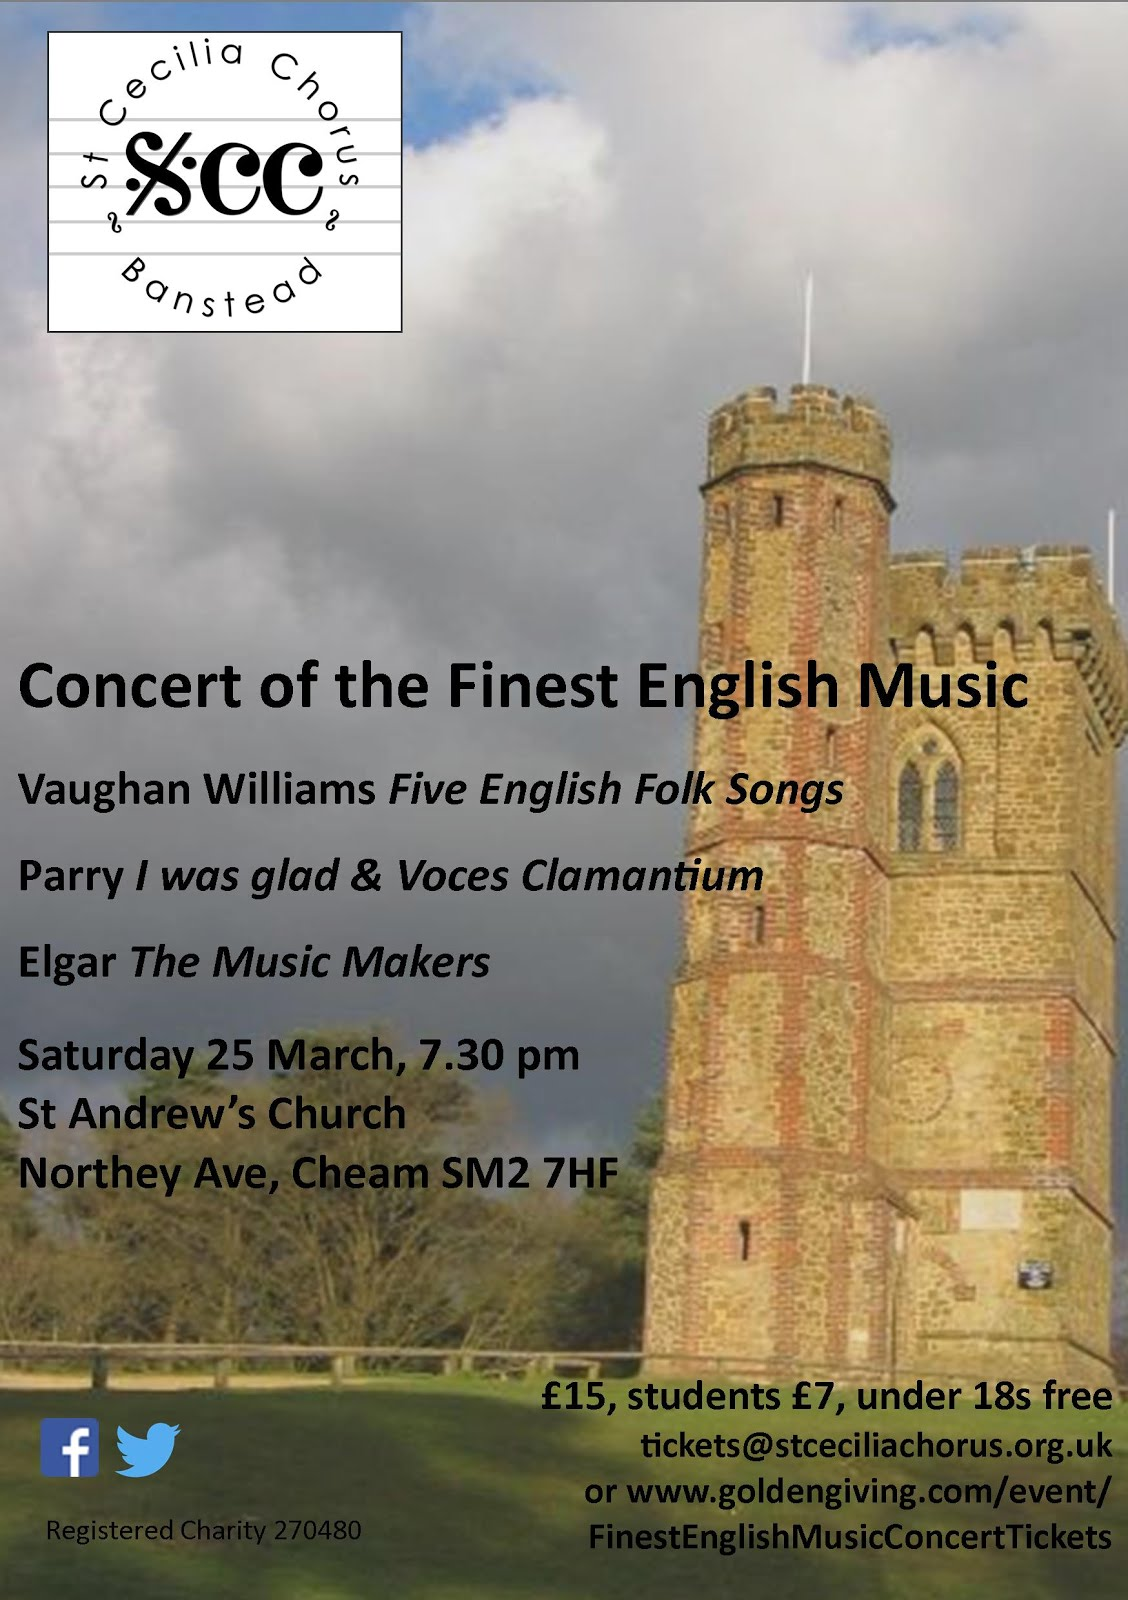 25 March - Finest English Music